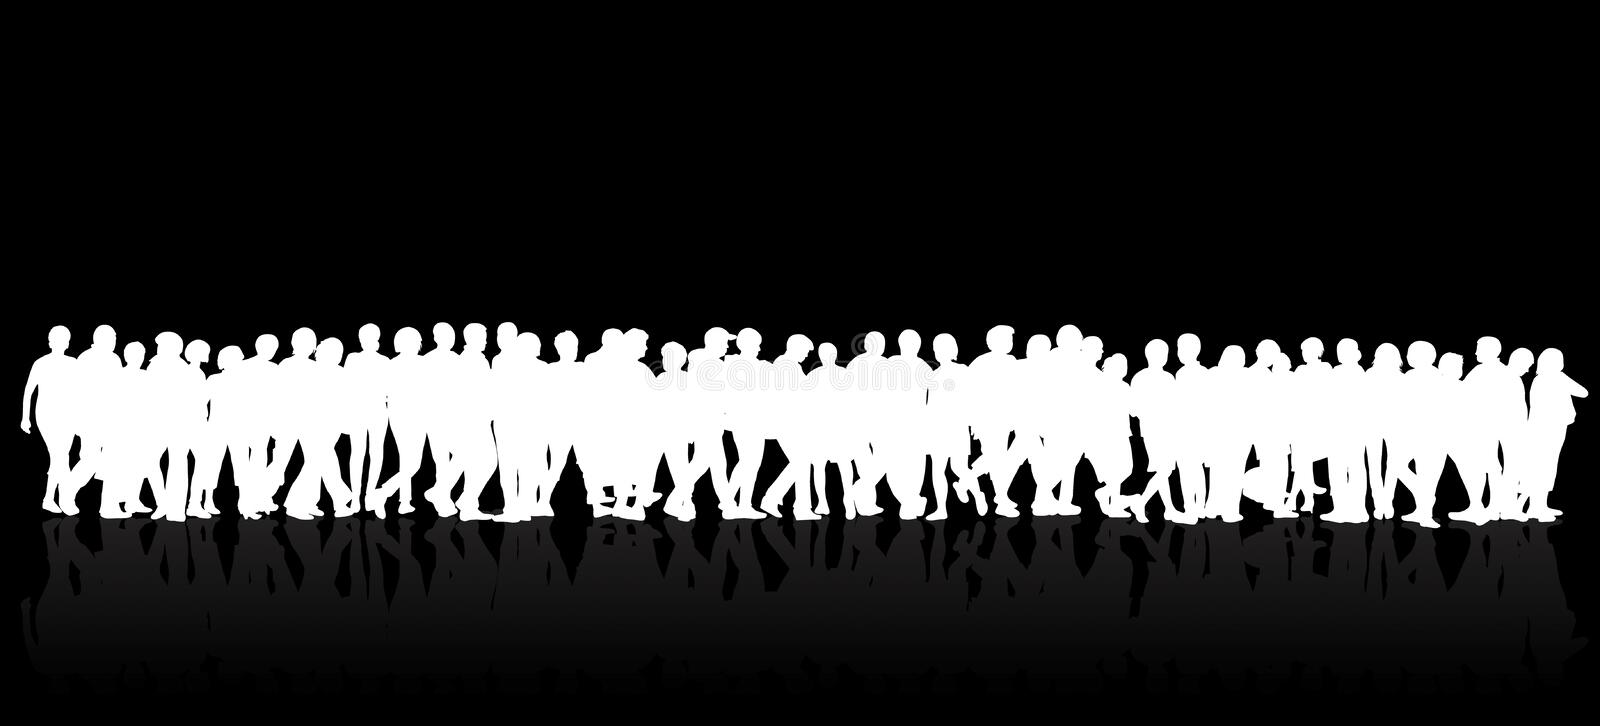 People silhouettes group women and men vector illustration